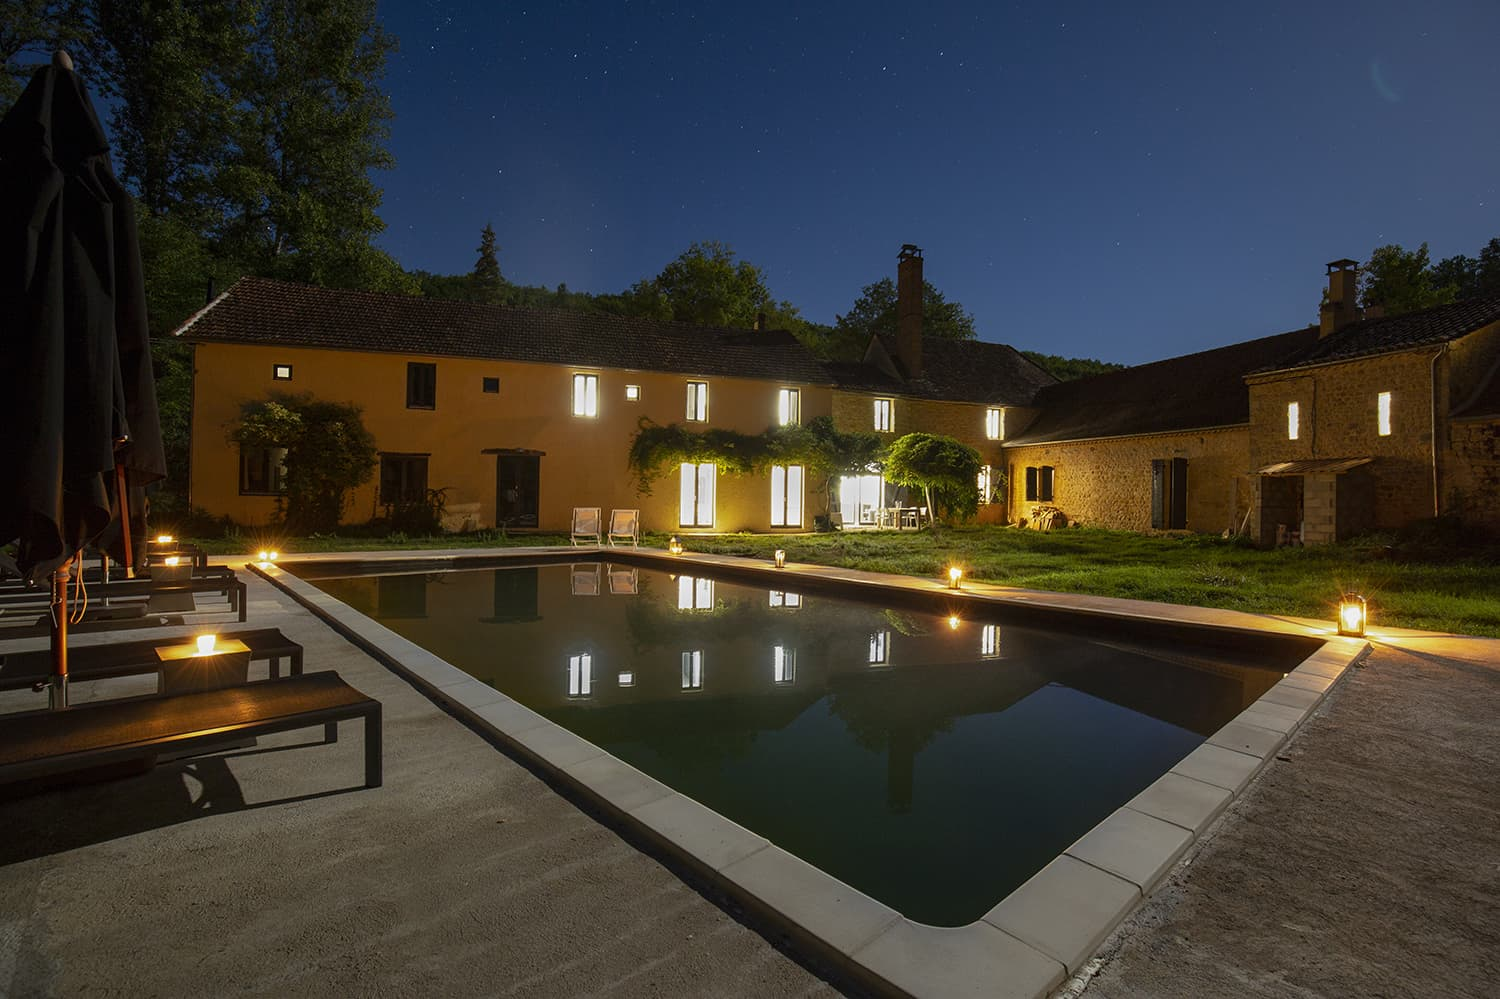 Holiday accommodation in Saint-Avit-Sénieur, Nouvelle-Aquitaine with private pool at night